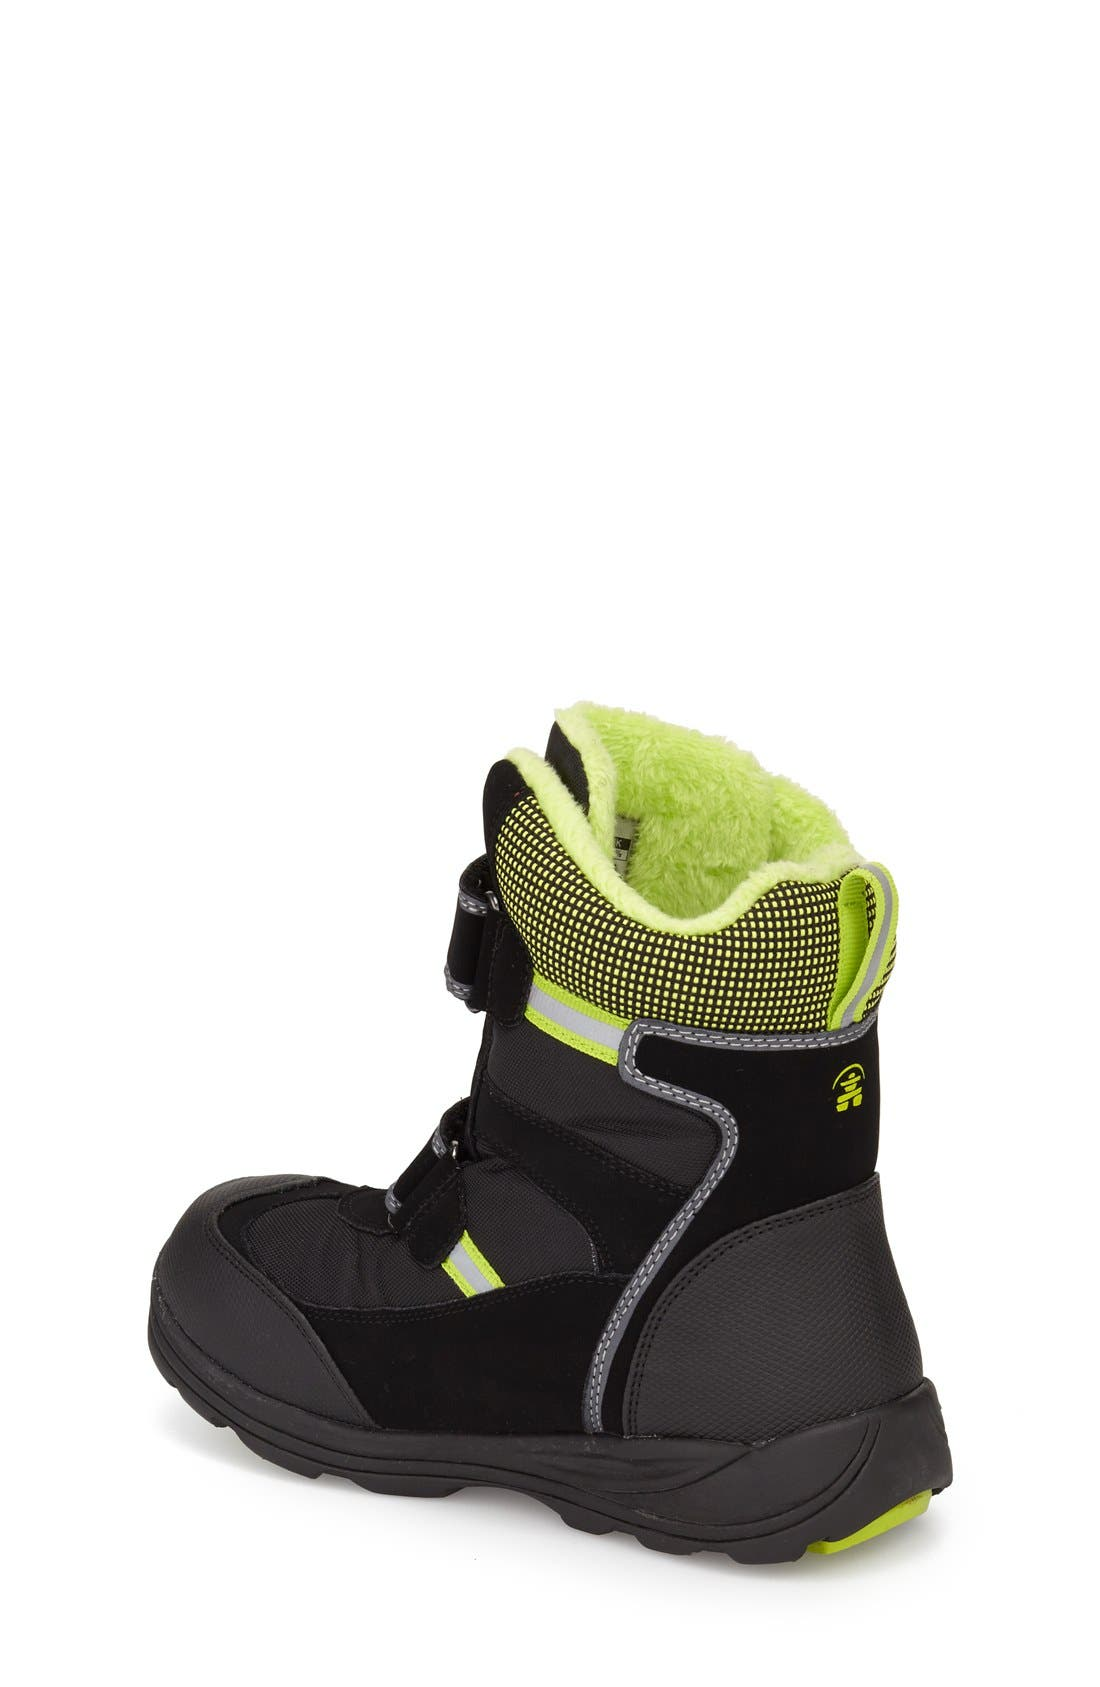 Slate Snow Boot,                             Alternate thumbnail 3, color,                             010